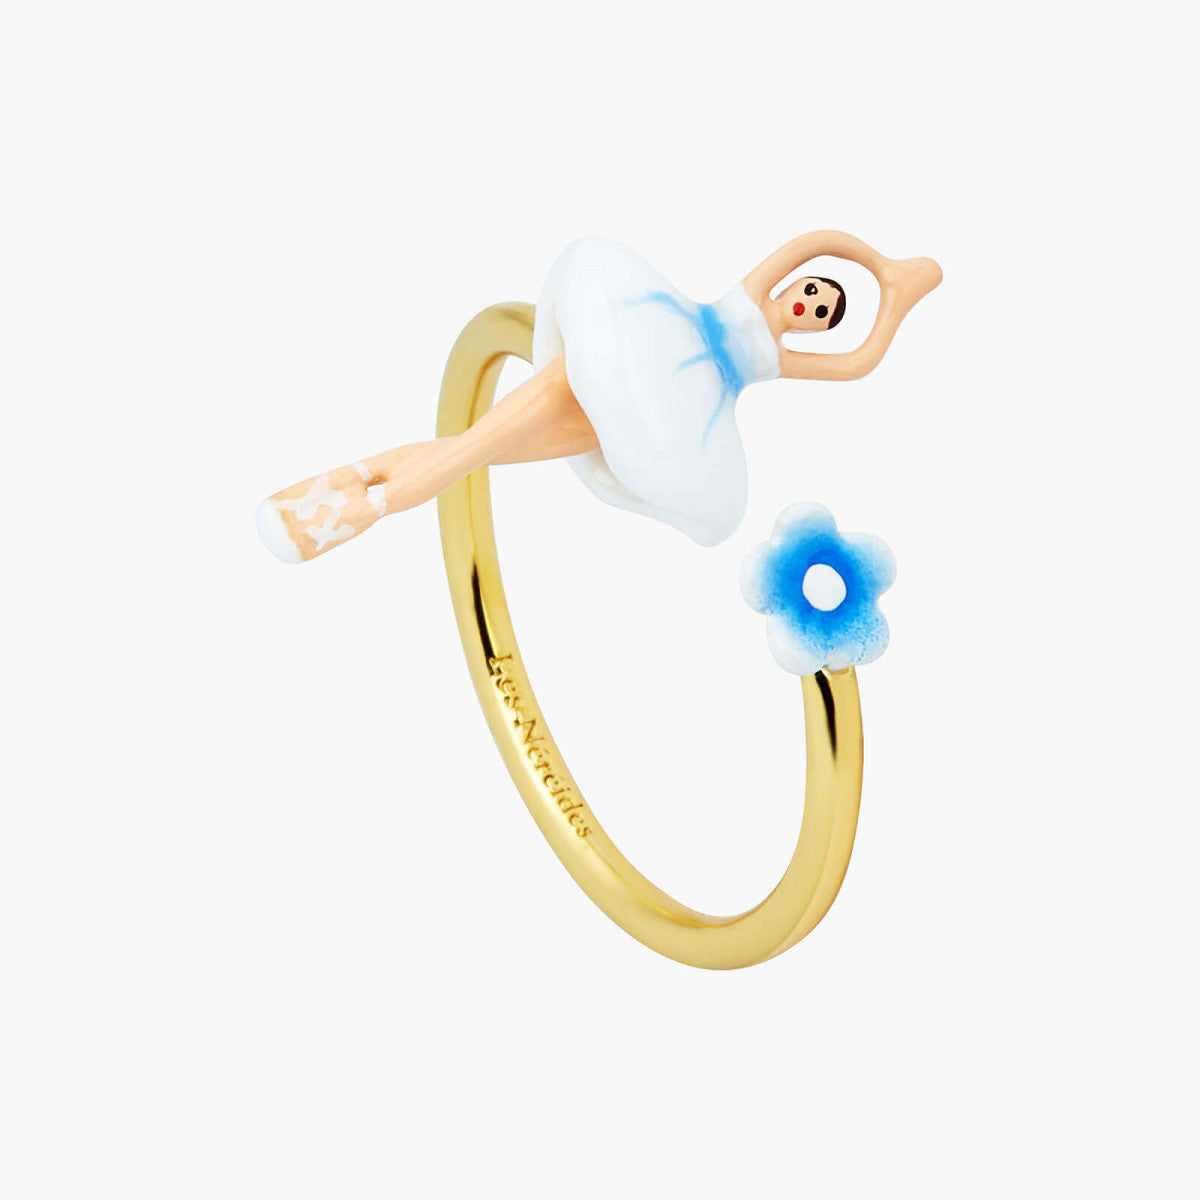 Mini Ballerina Forget-me-not adjustable Ring